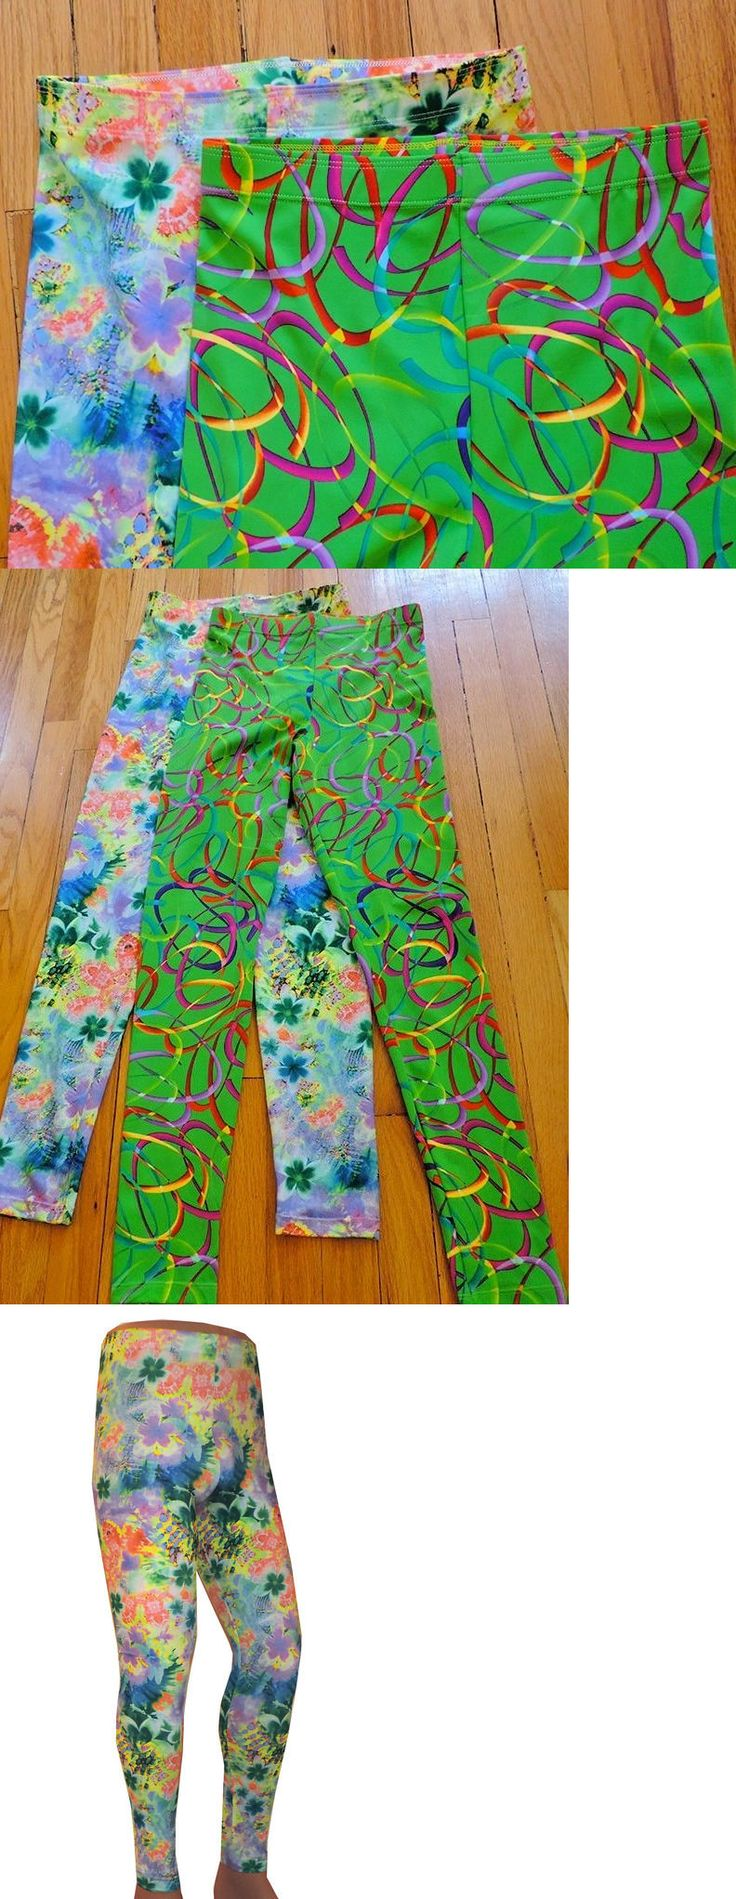 Clothing 79796: Lot 2 Medium Wrestling Tights Abstract Floral Bright Festival Edm Cos Play -> BUY IT NOW ONLY: $40 on eBay!